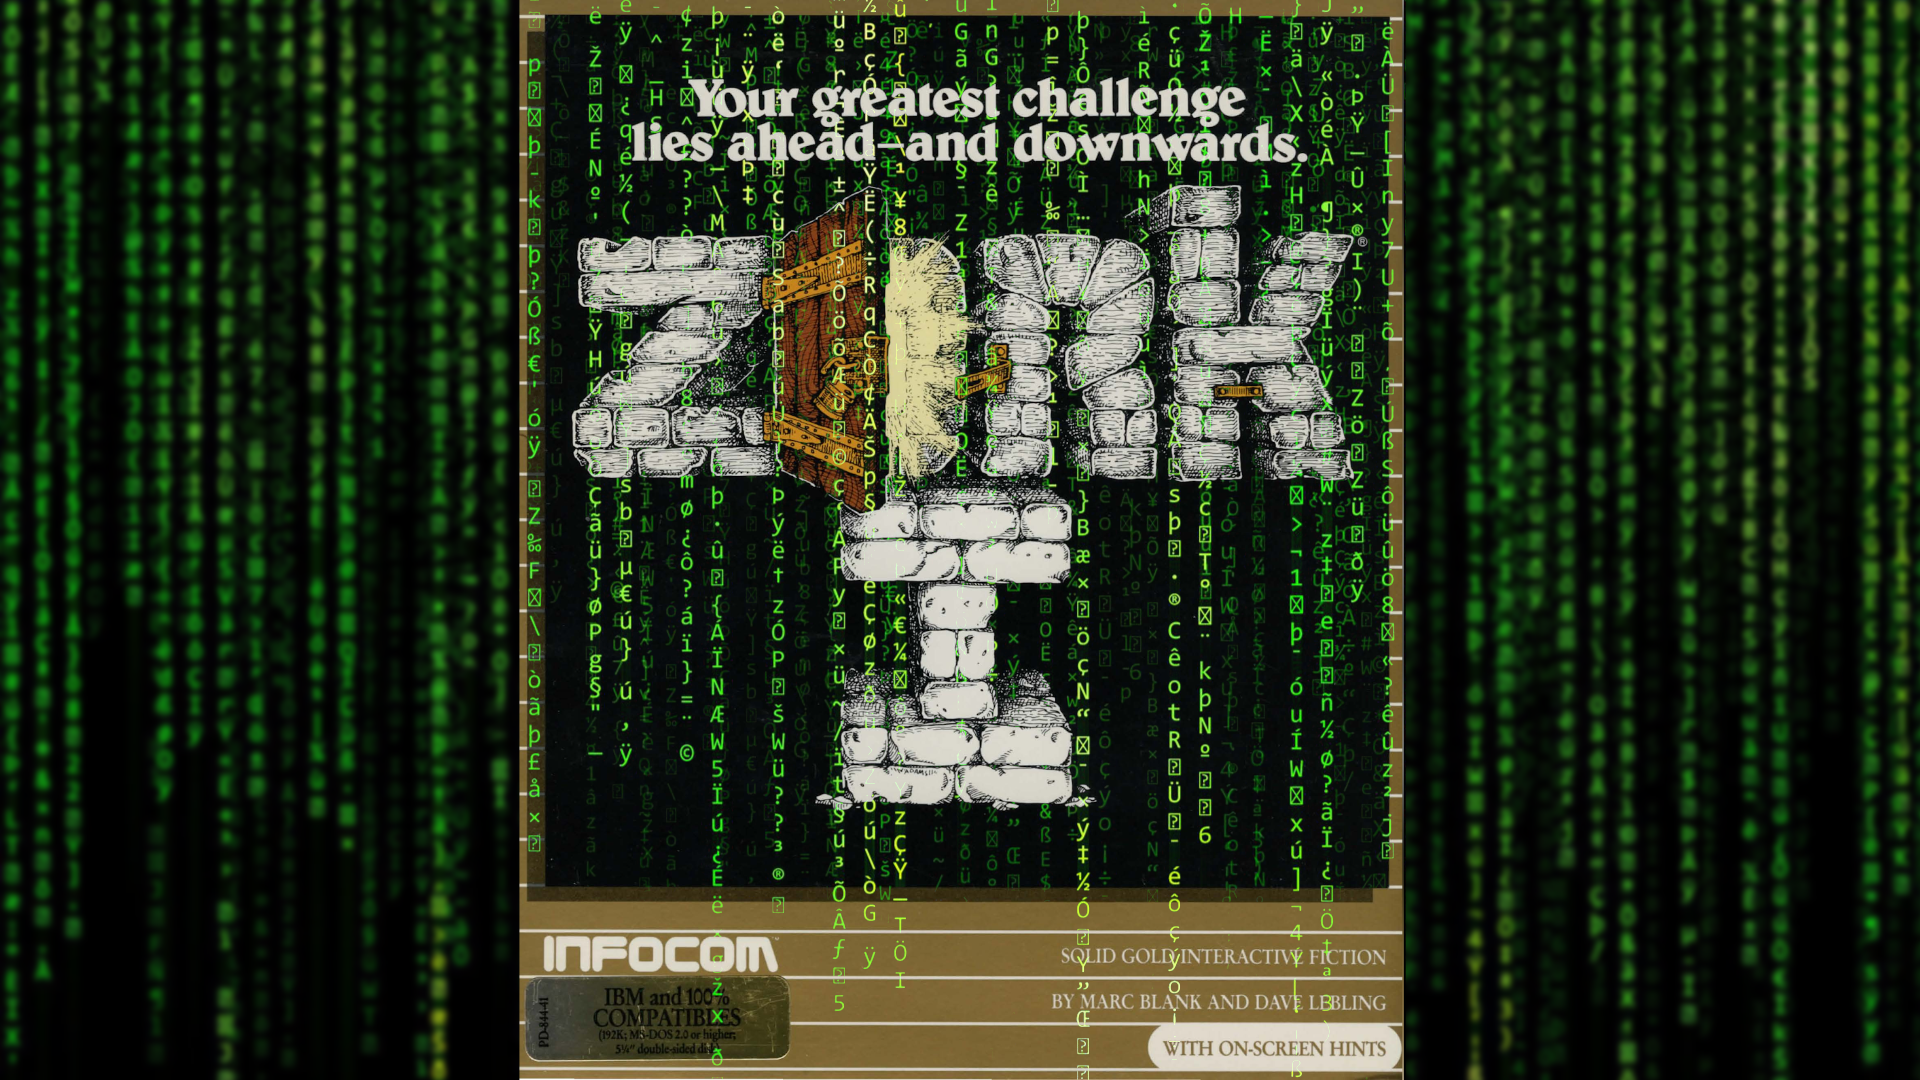 Zork cover art overlayed with the code from The Matrix.